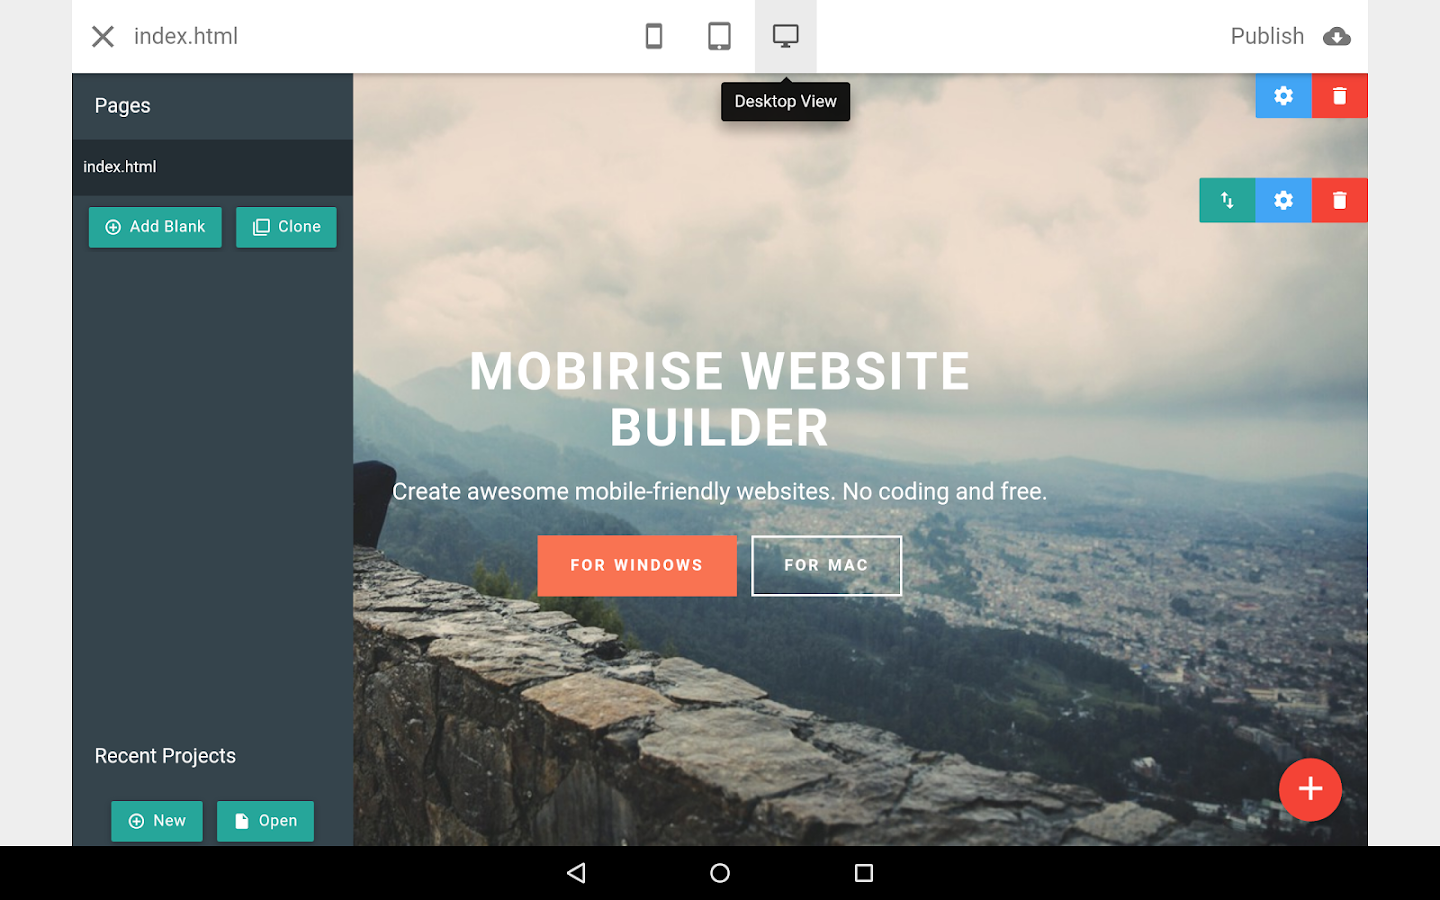 Mobirise Website Builder Android Apps On Google Play ... - photo#8